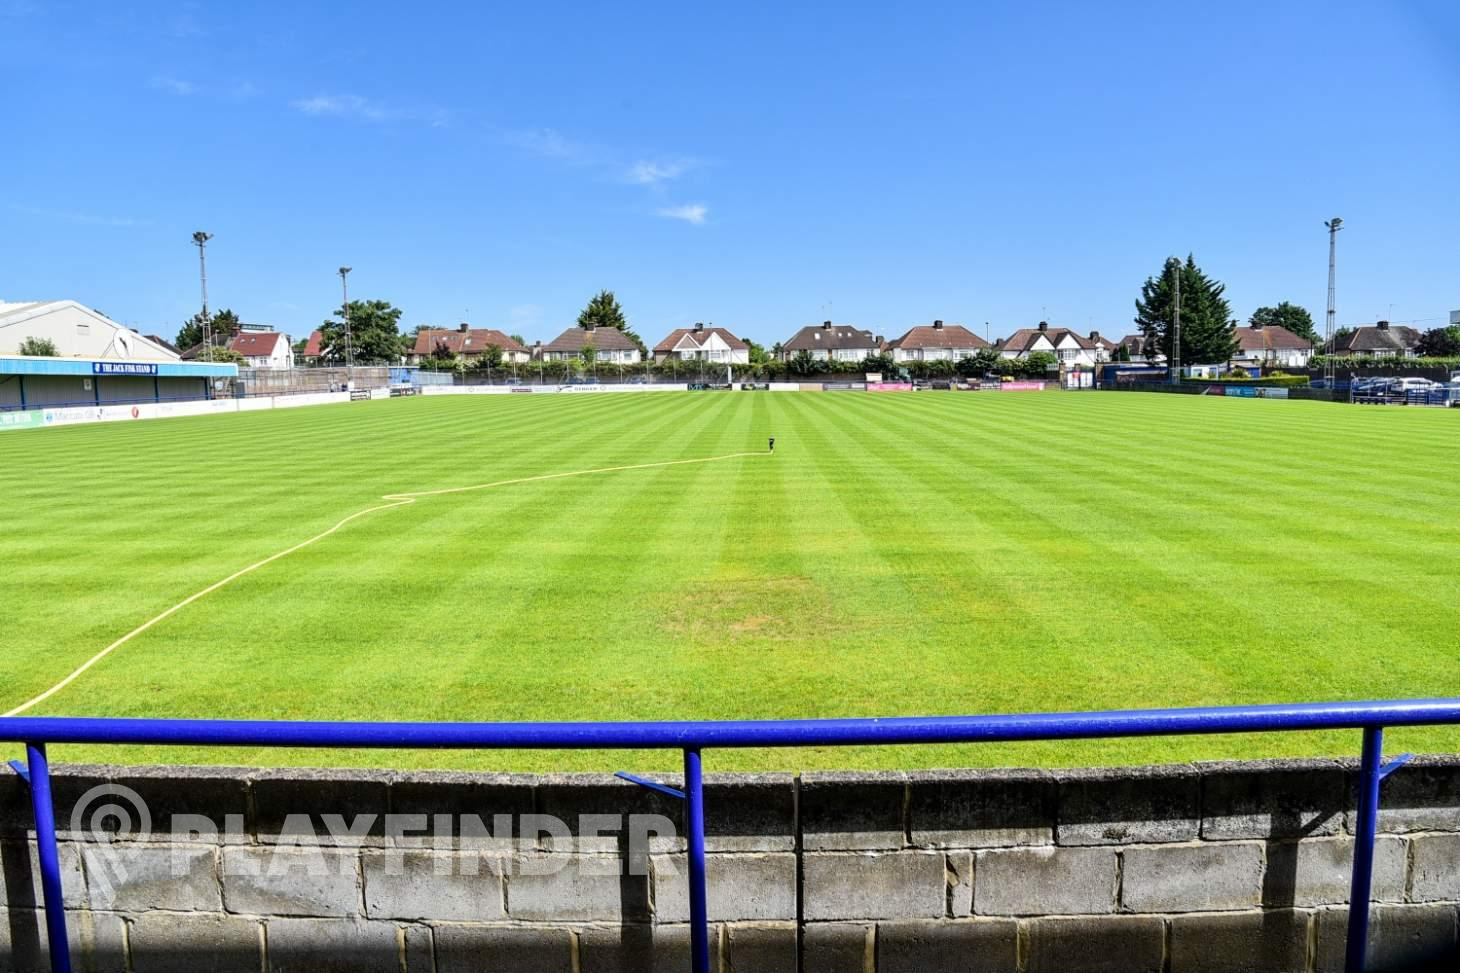 Wingate and Finchley F.C